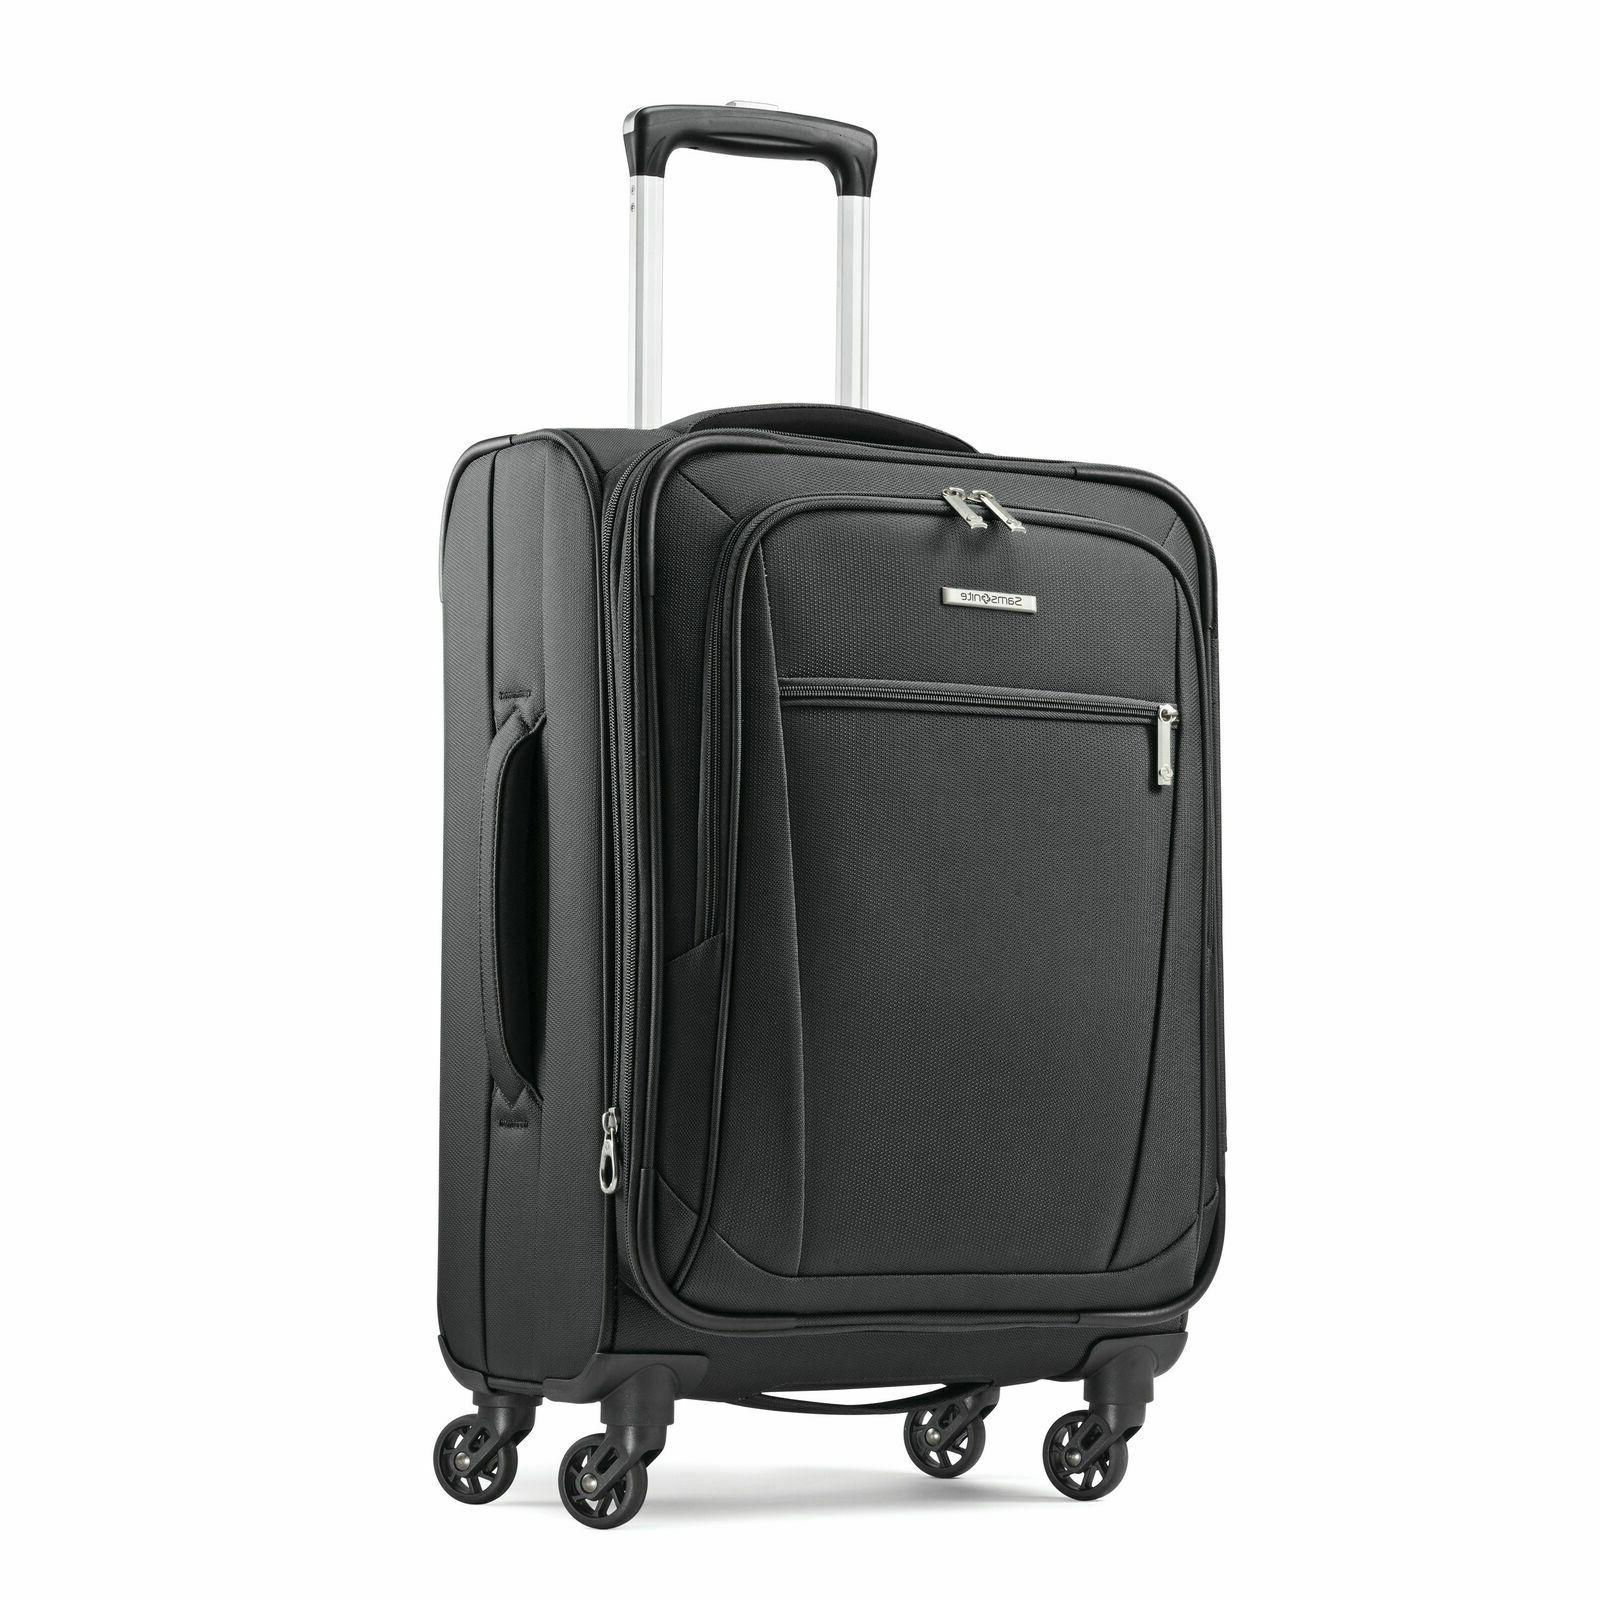 "Samsonite Luggage Ascella 20"" Expandable Spinner Carry-On Up"